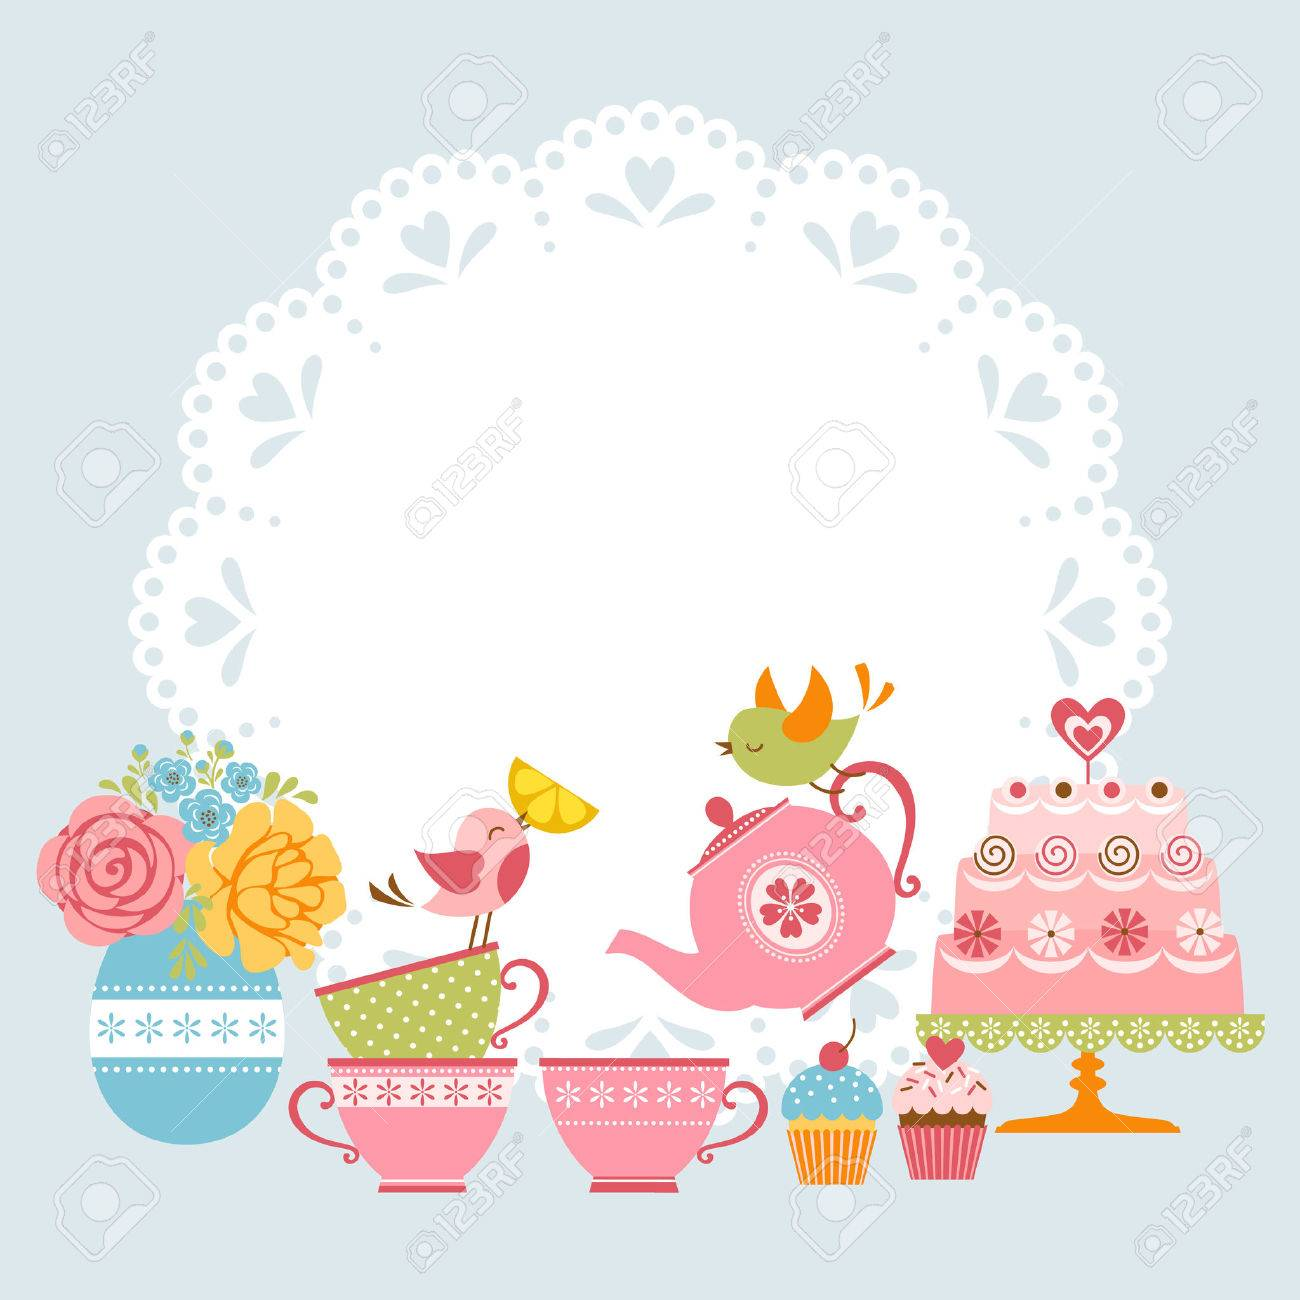 Tea Party Invitation With Cute Birds And Place For Your Text ...